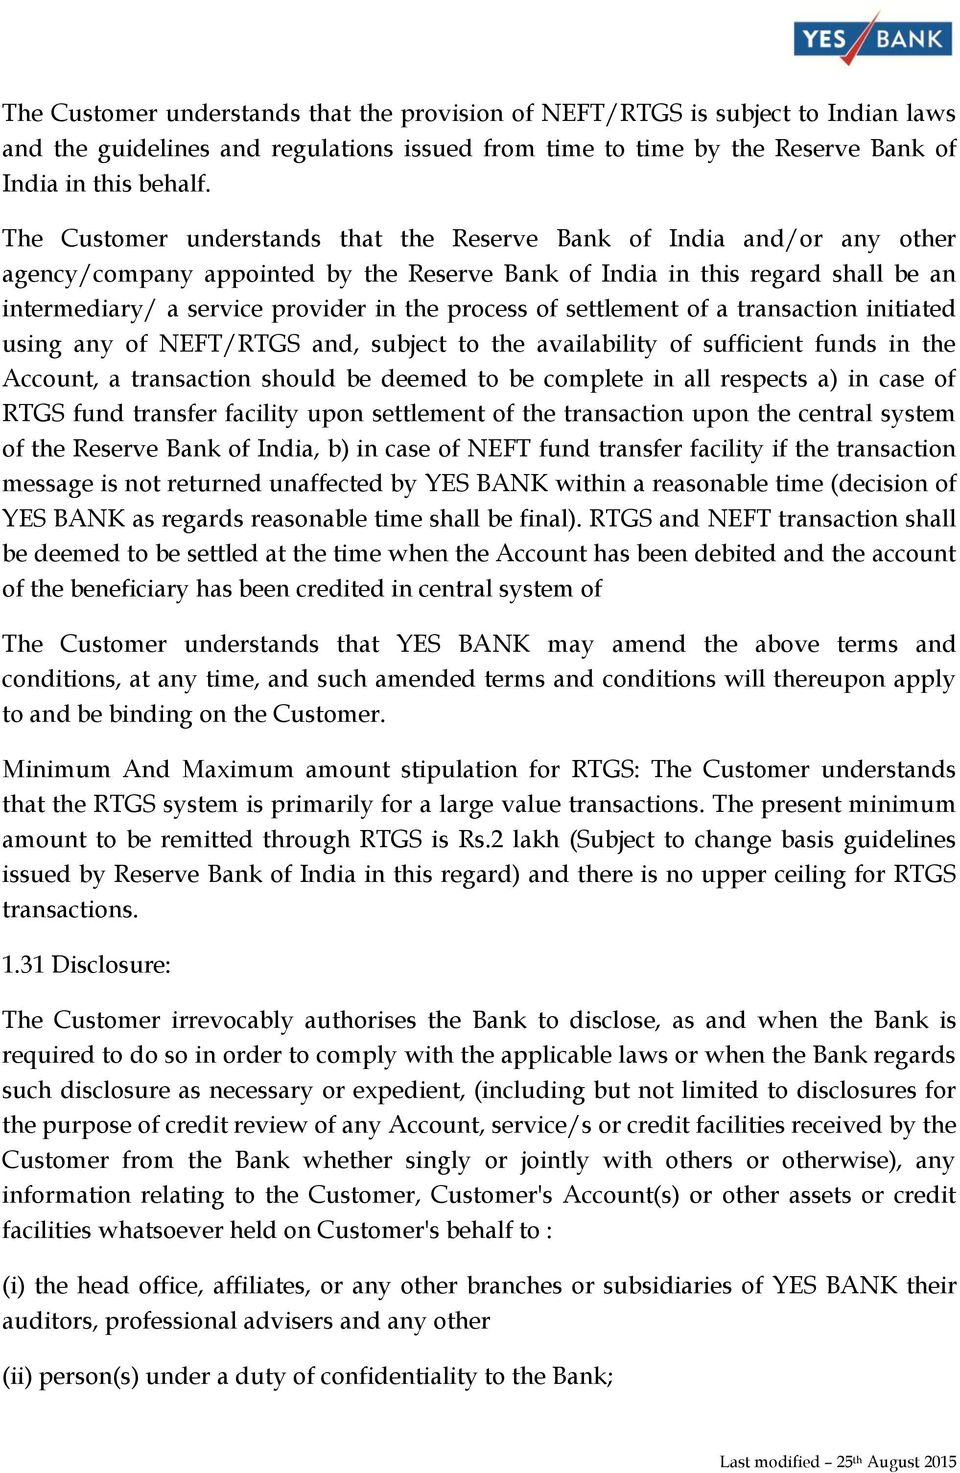 process of settlement of a transaction initiated using any of NEFT/RTGS and, subject to the availability of sufficient funds in the Account, a transaction should be deemed to be complete in all